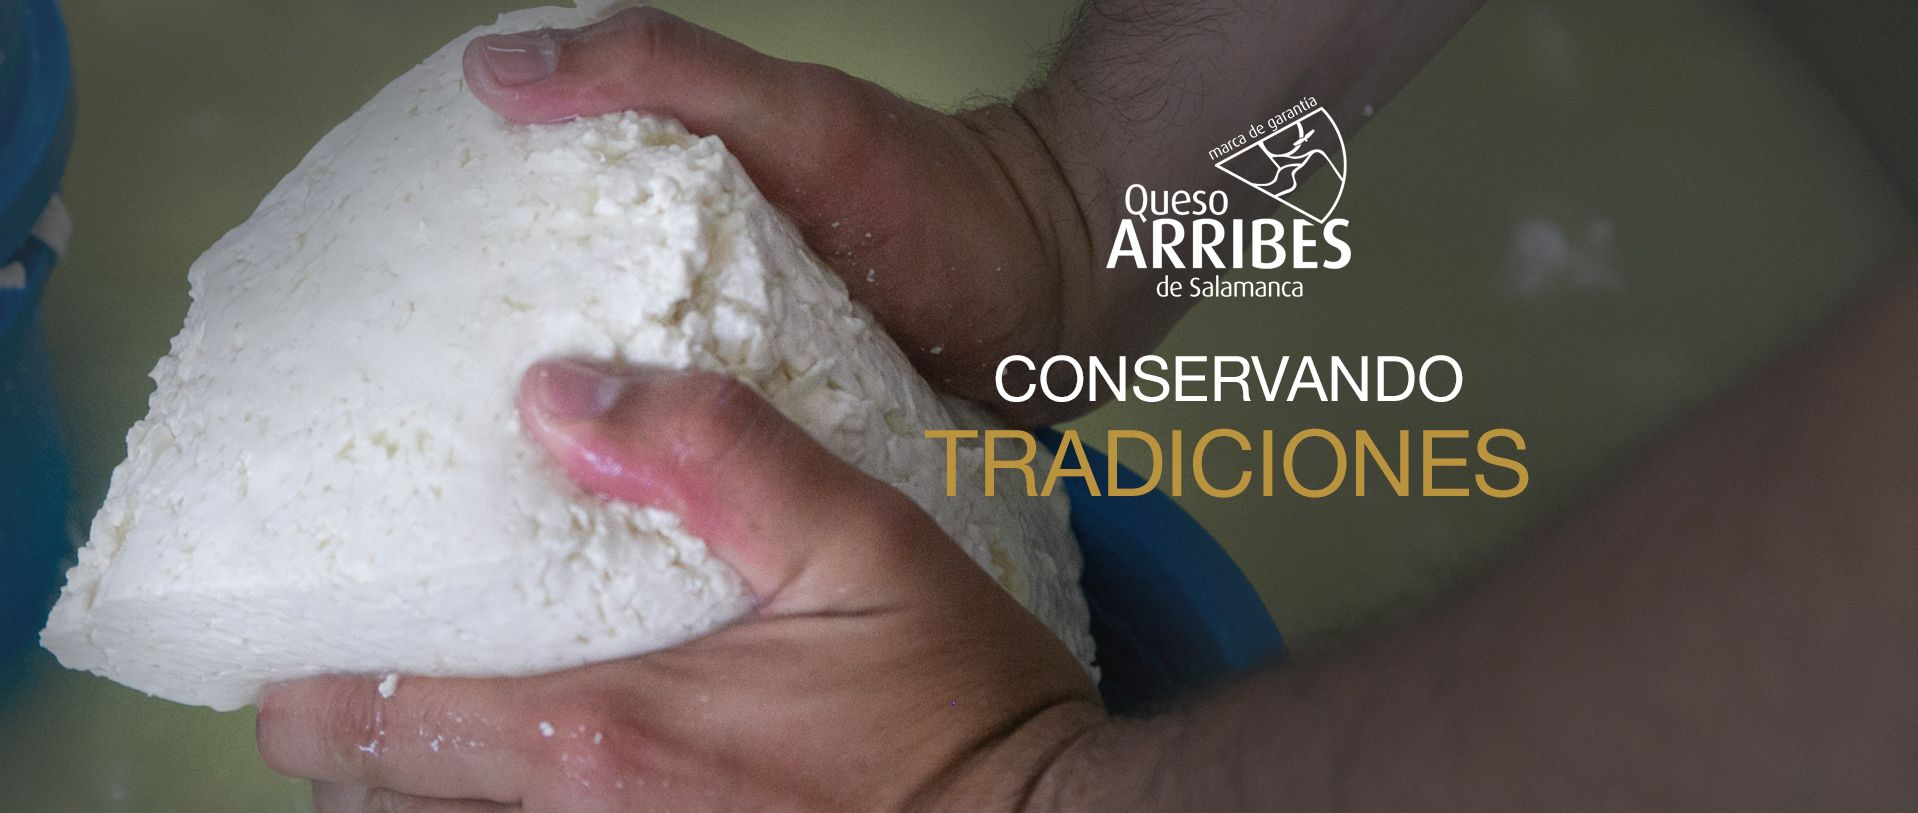 Queso Arribes Salamanca - Slide 4